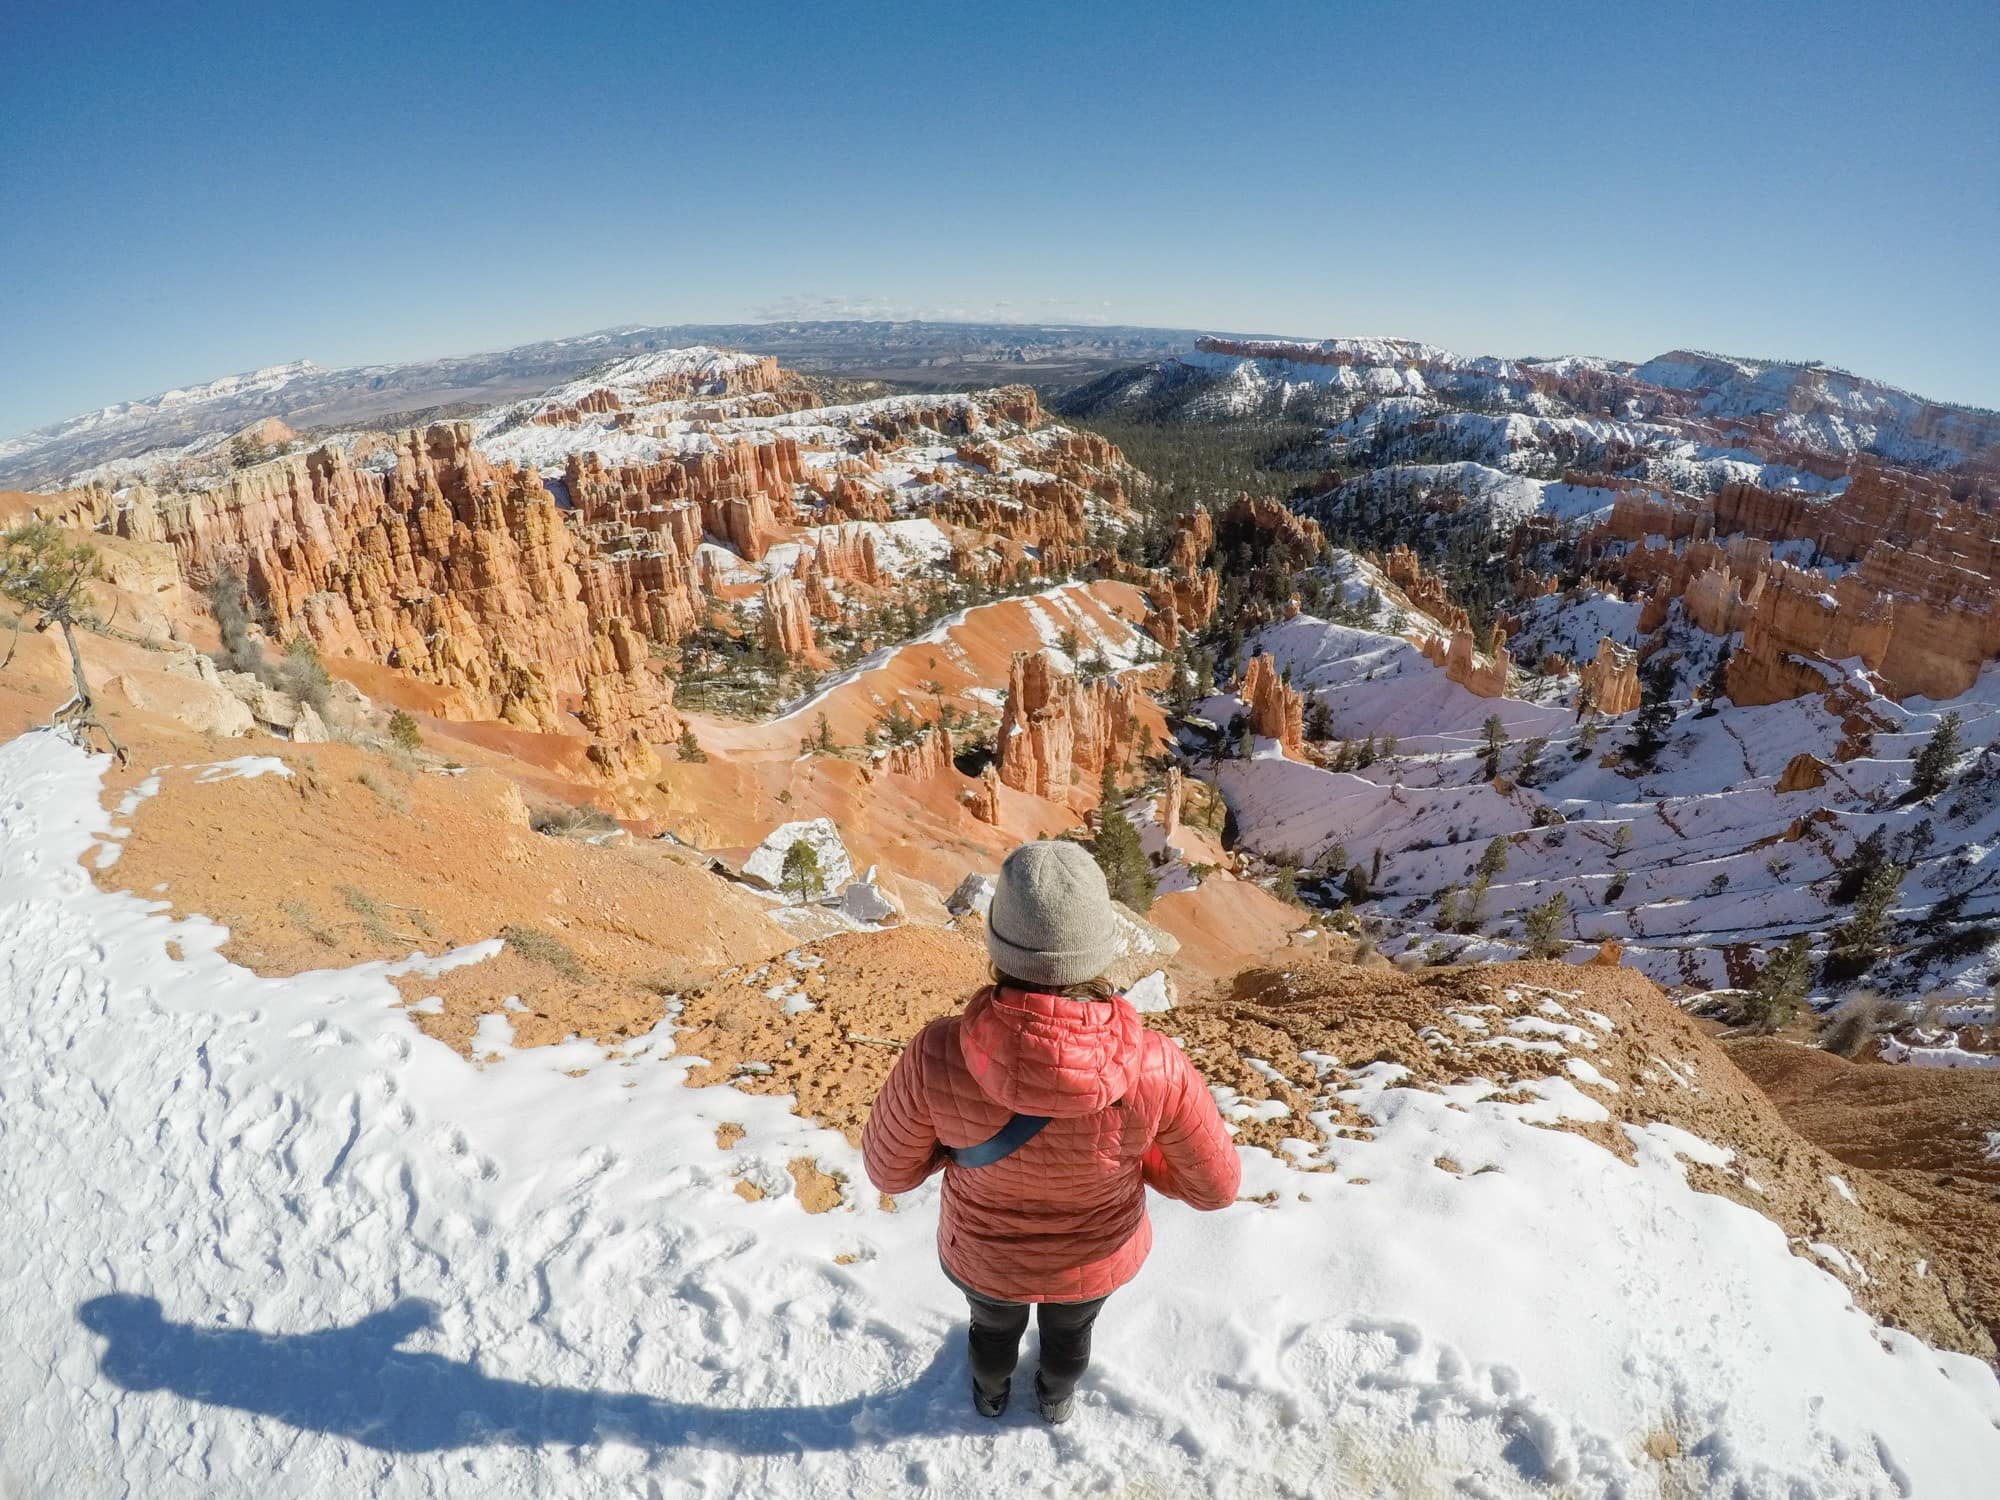 Bryce Canyon in winter // Explore Utah National Parks in this 10-day road trip itinerary w/ the best hikes, activities & camping in Zion, Bryce, Capitol Reef, Arches & Canyonlands.